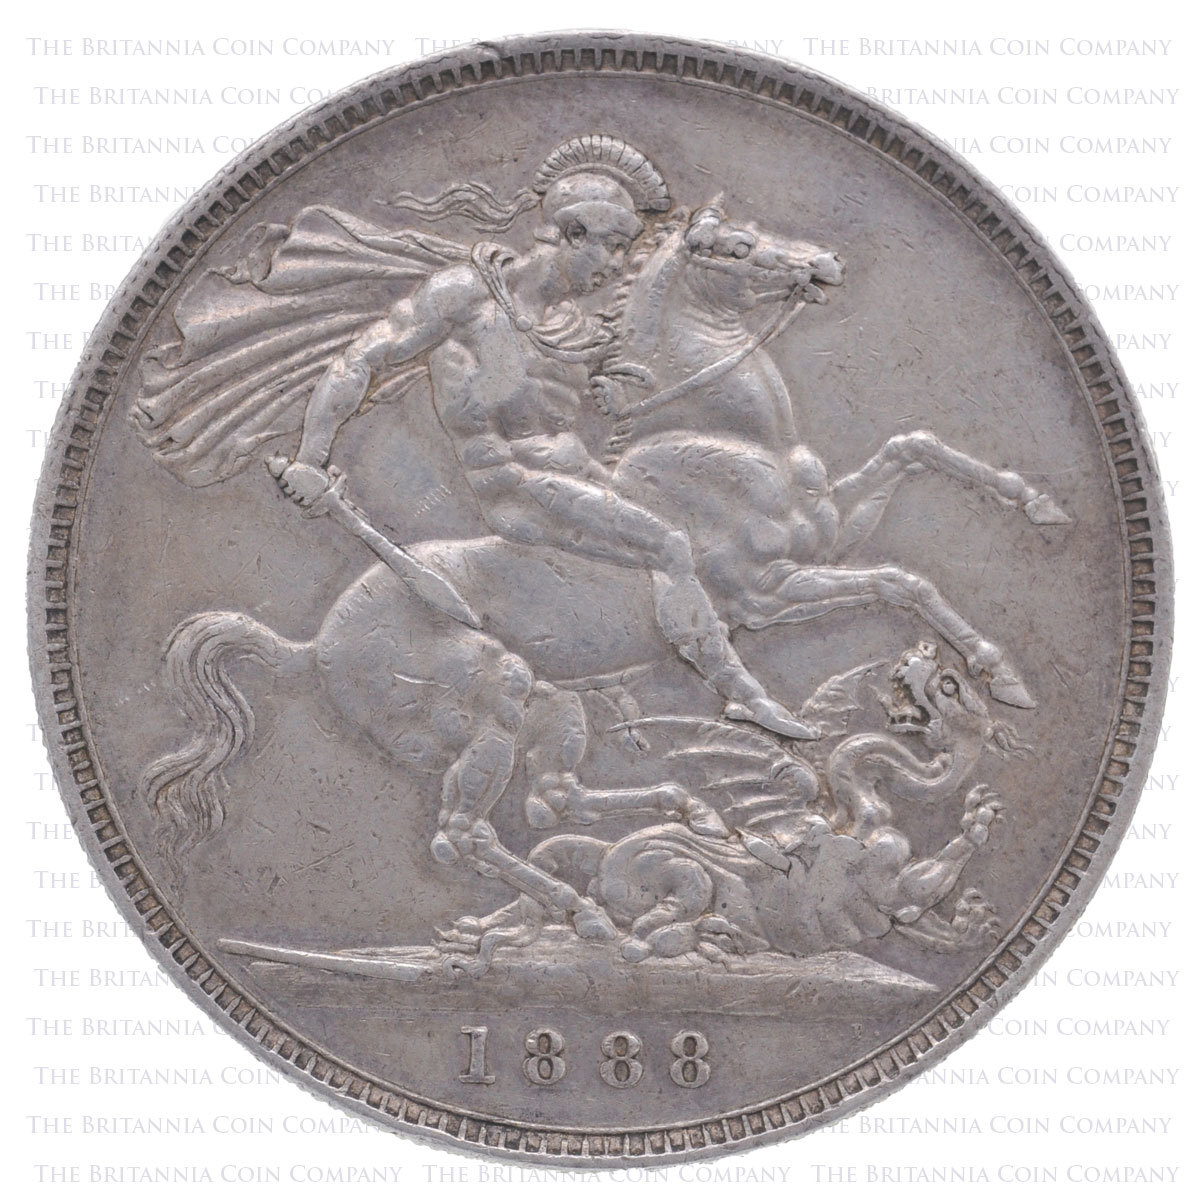 1888 Queen Victoria Silver Crown 'wide date' Reverse